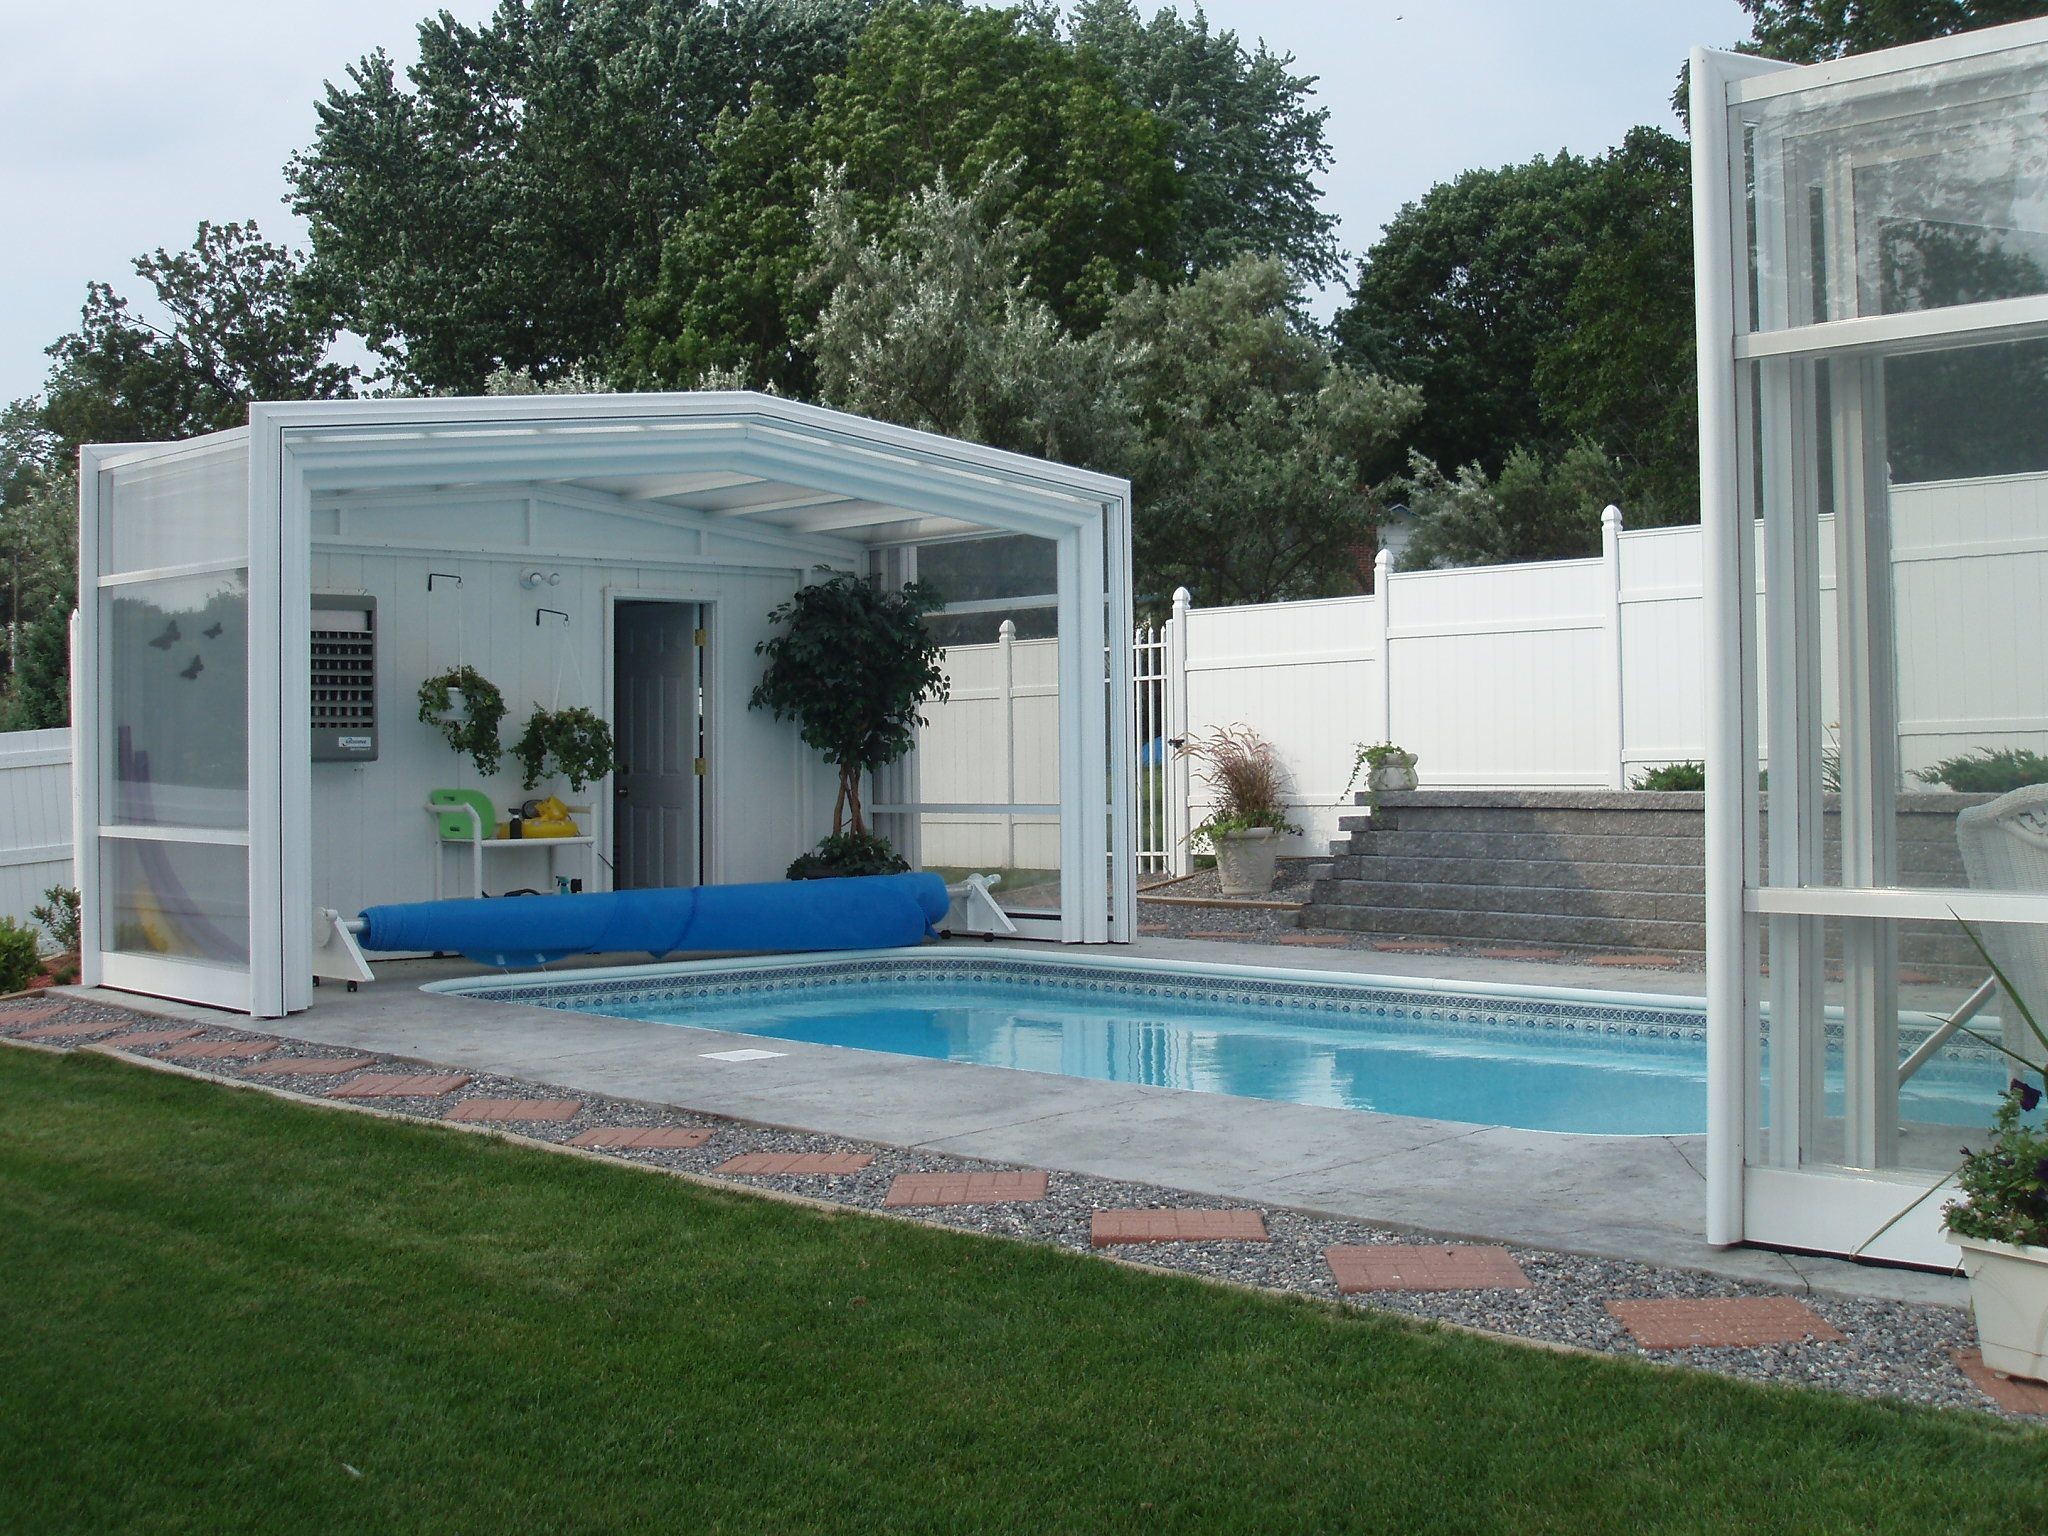 Year Round Pool Enclosures Also Make His Yard Look Great The